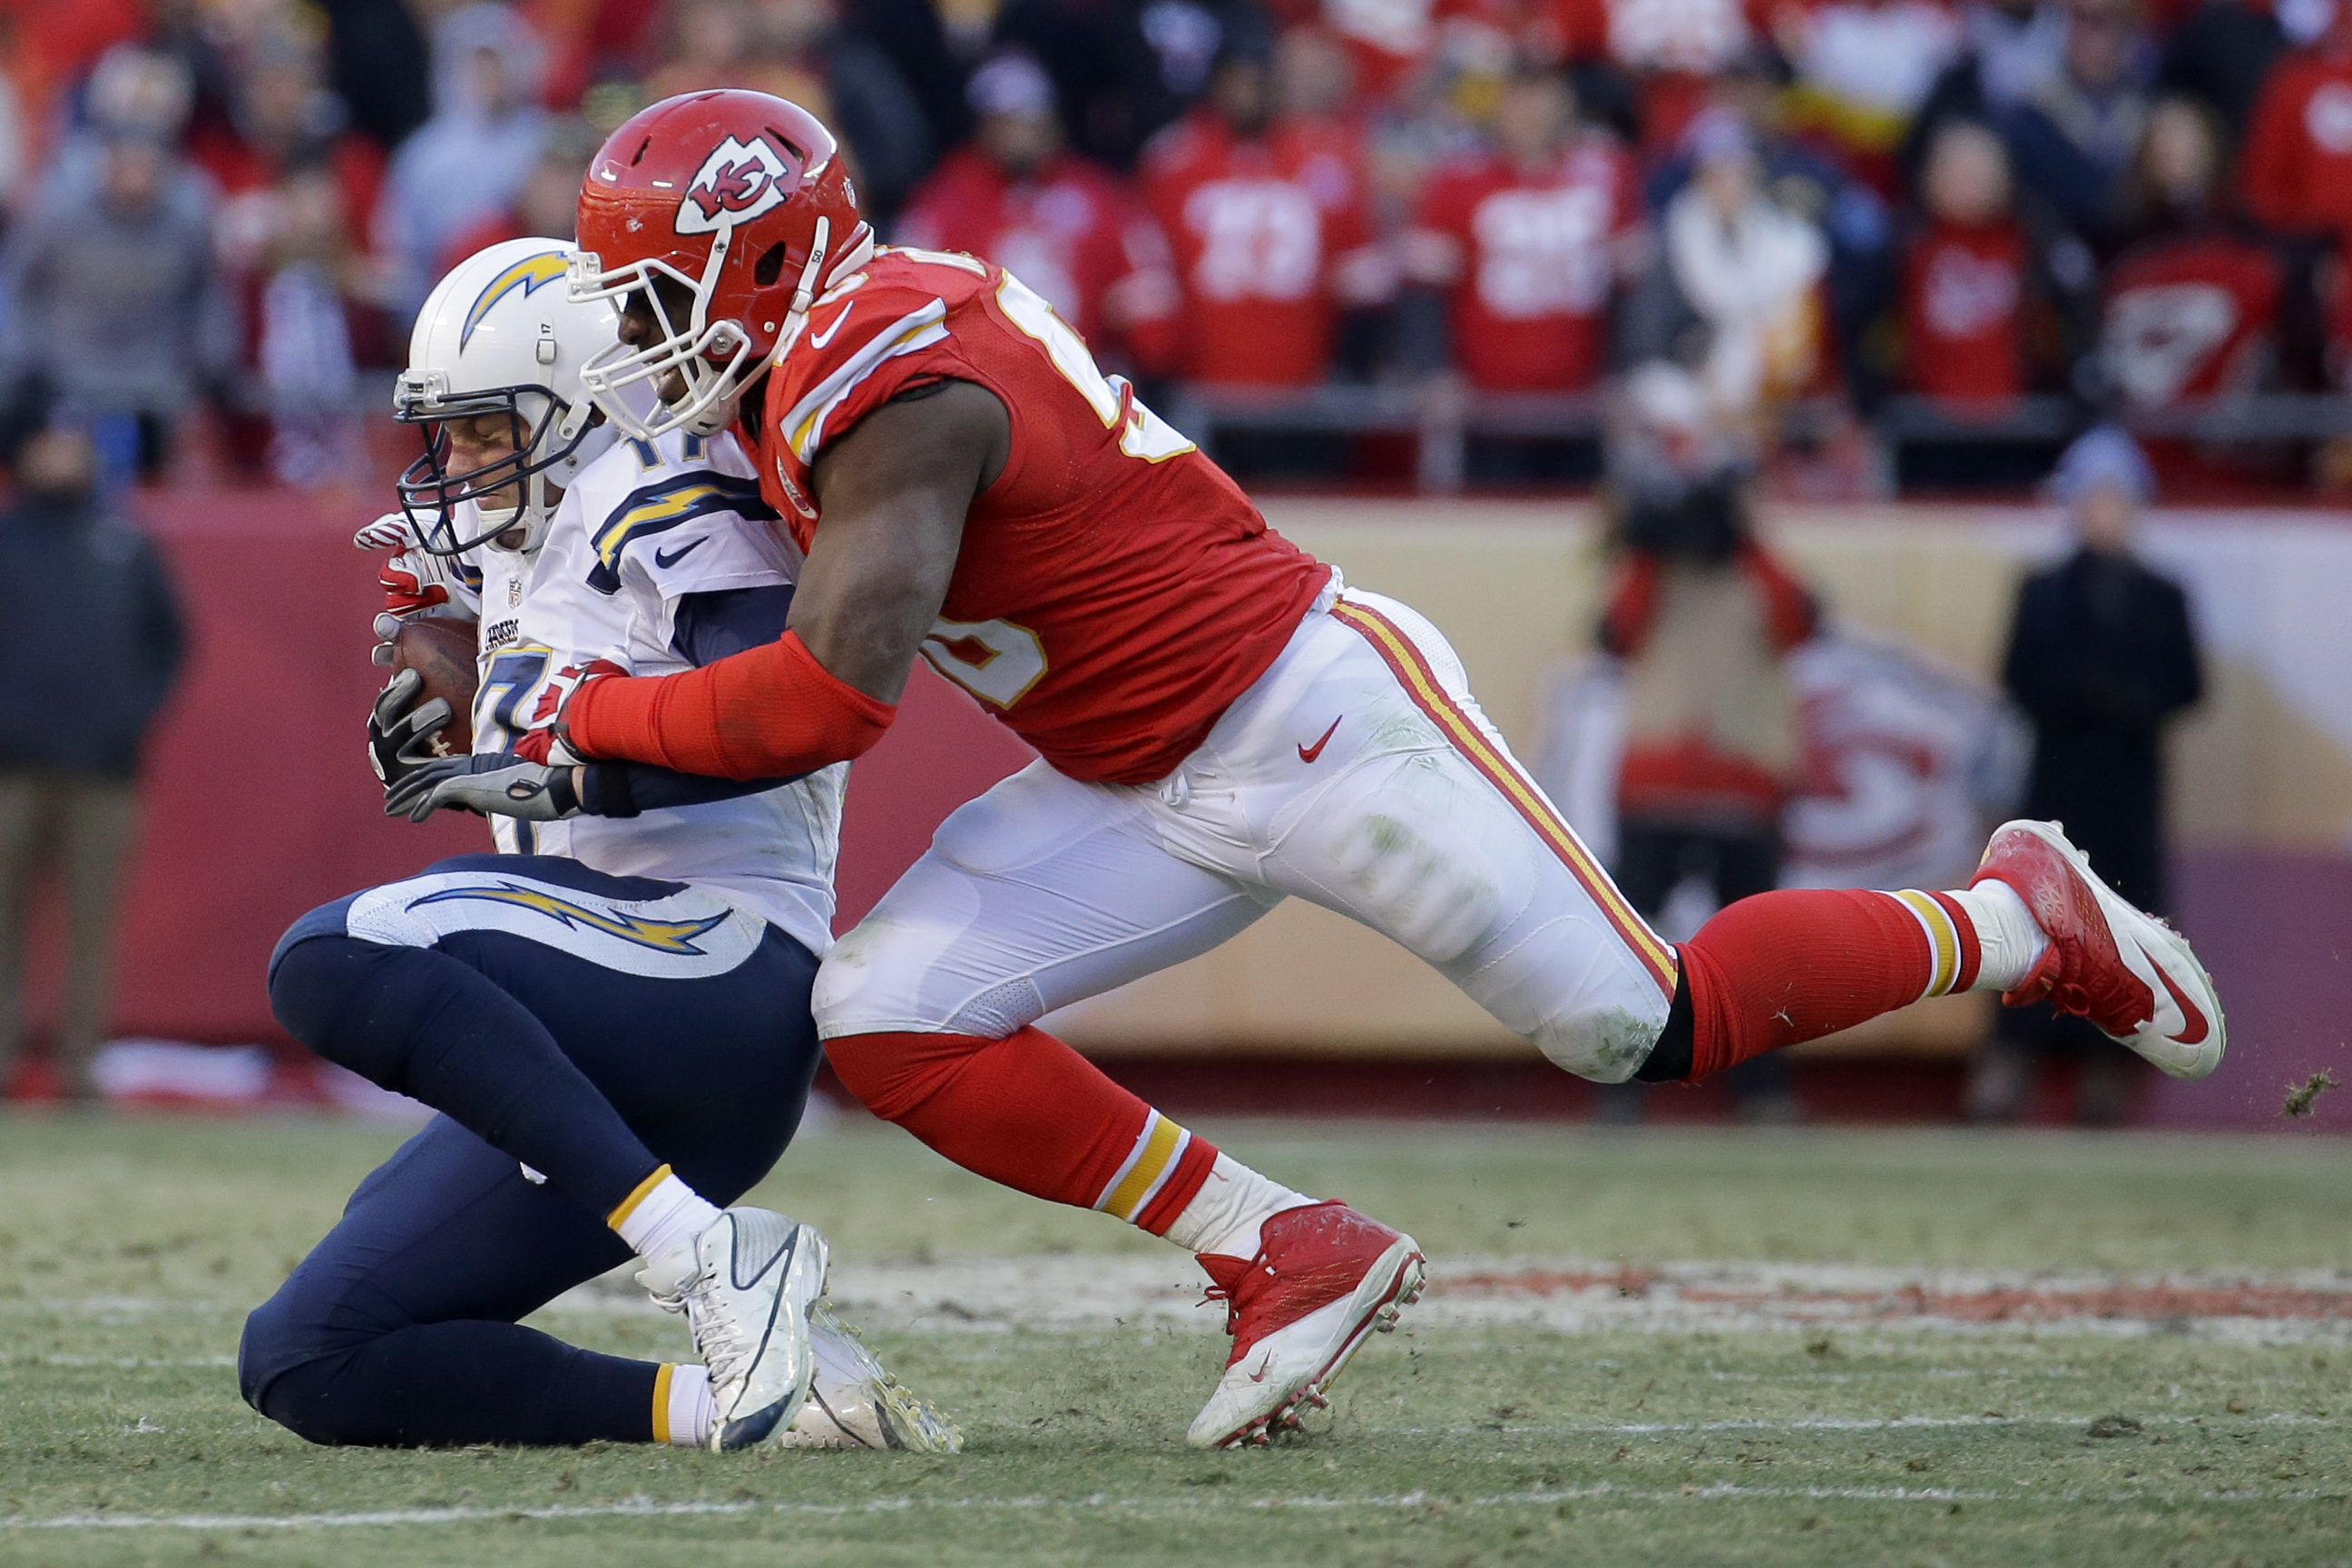 f891a42b Chargers Lose To Chiefs, Miss Playoffs | KPBS